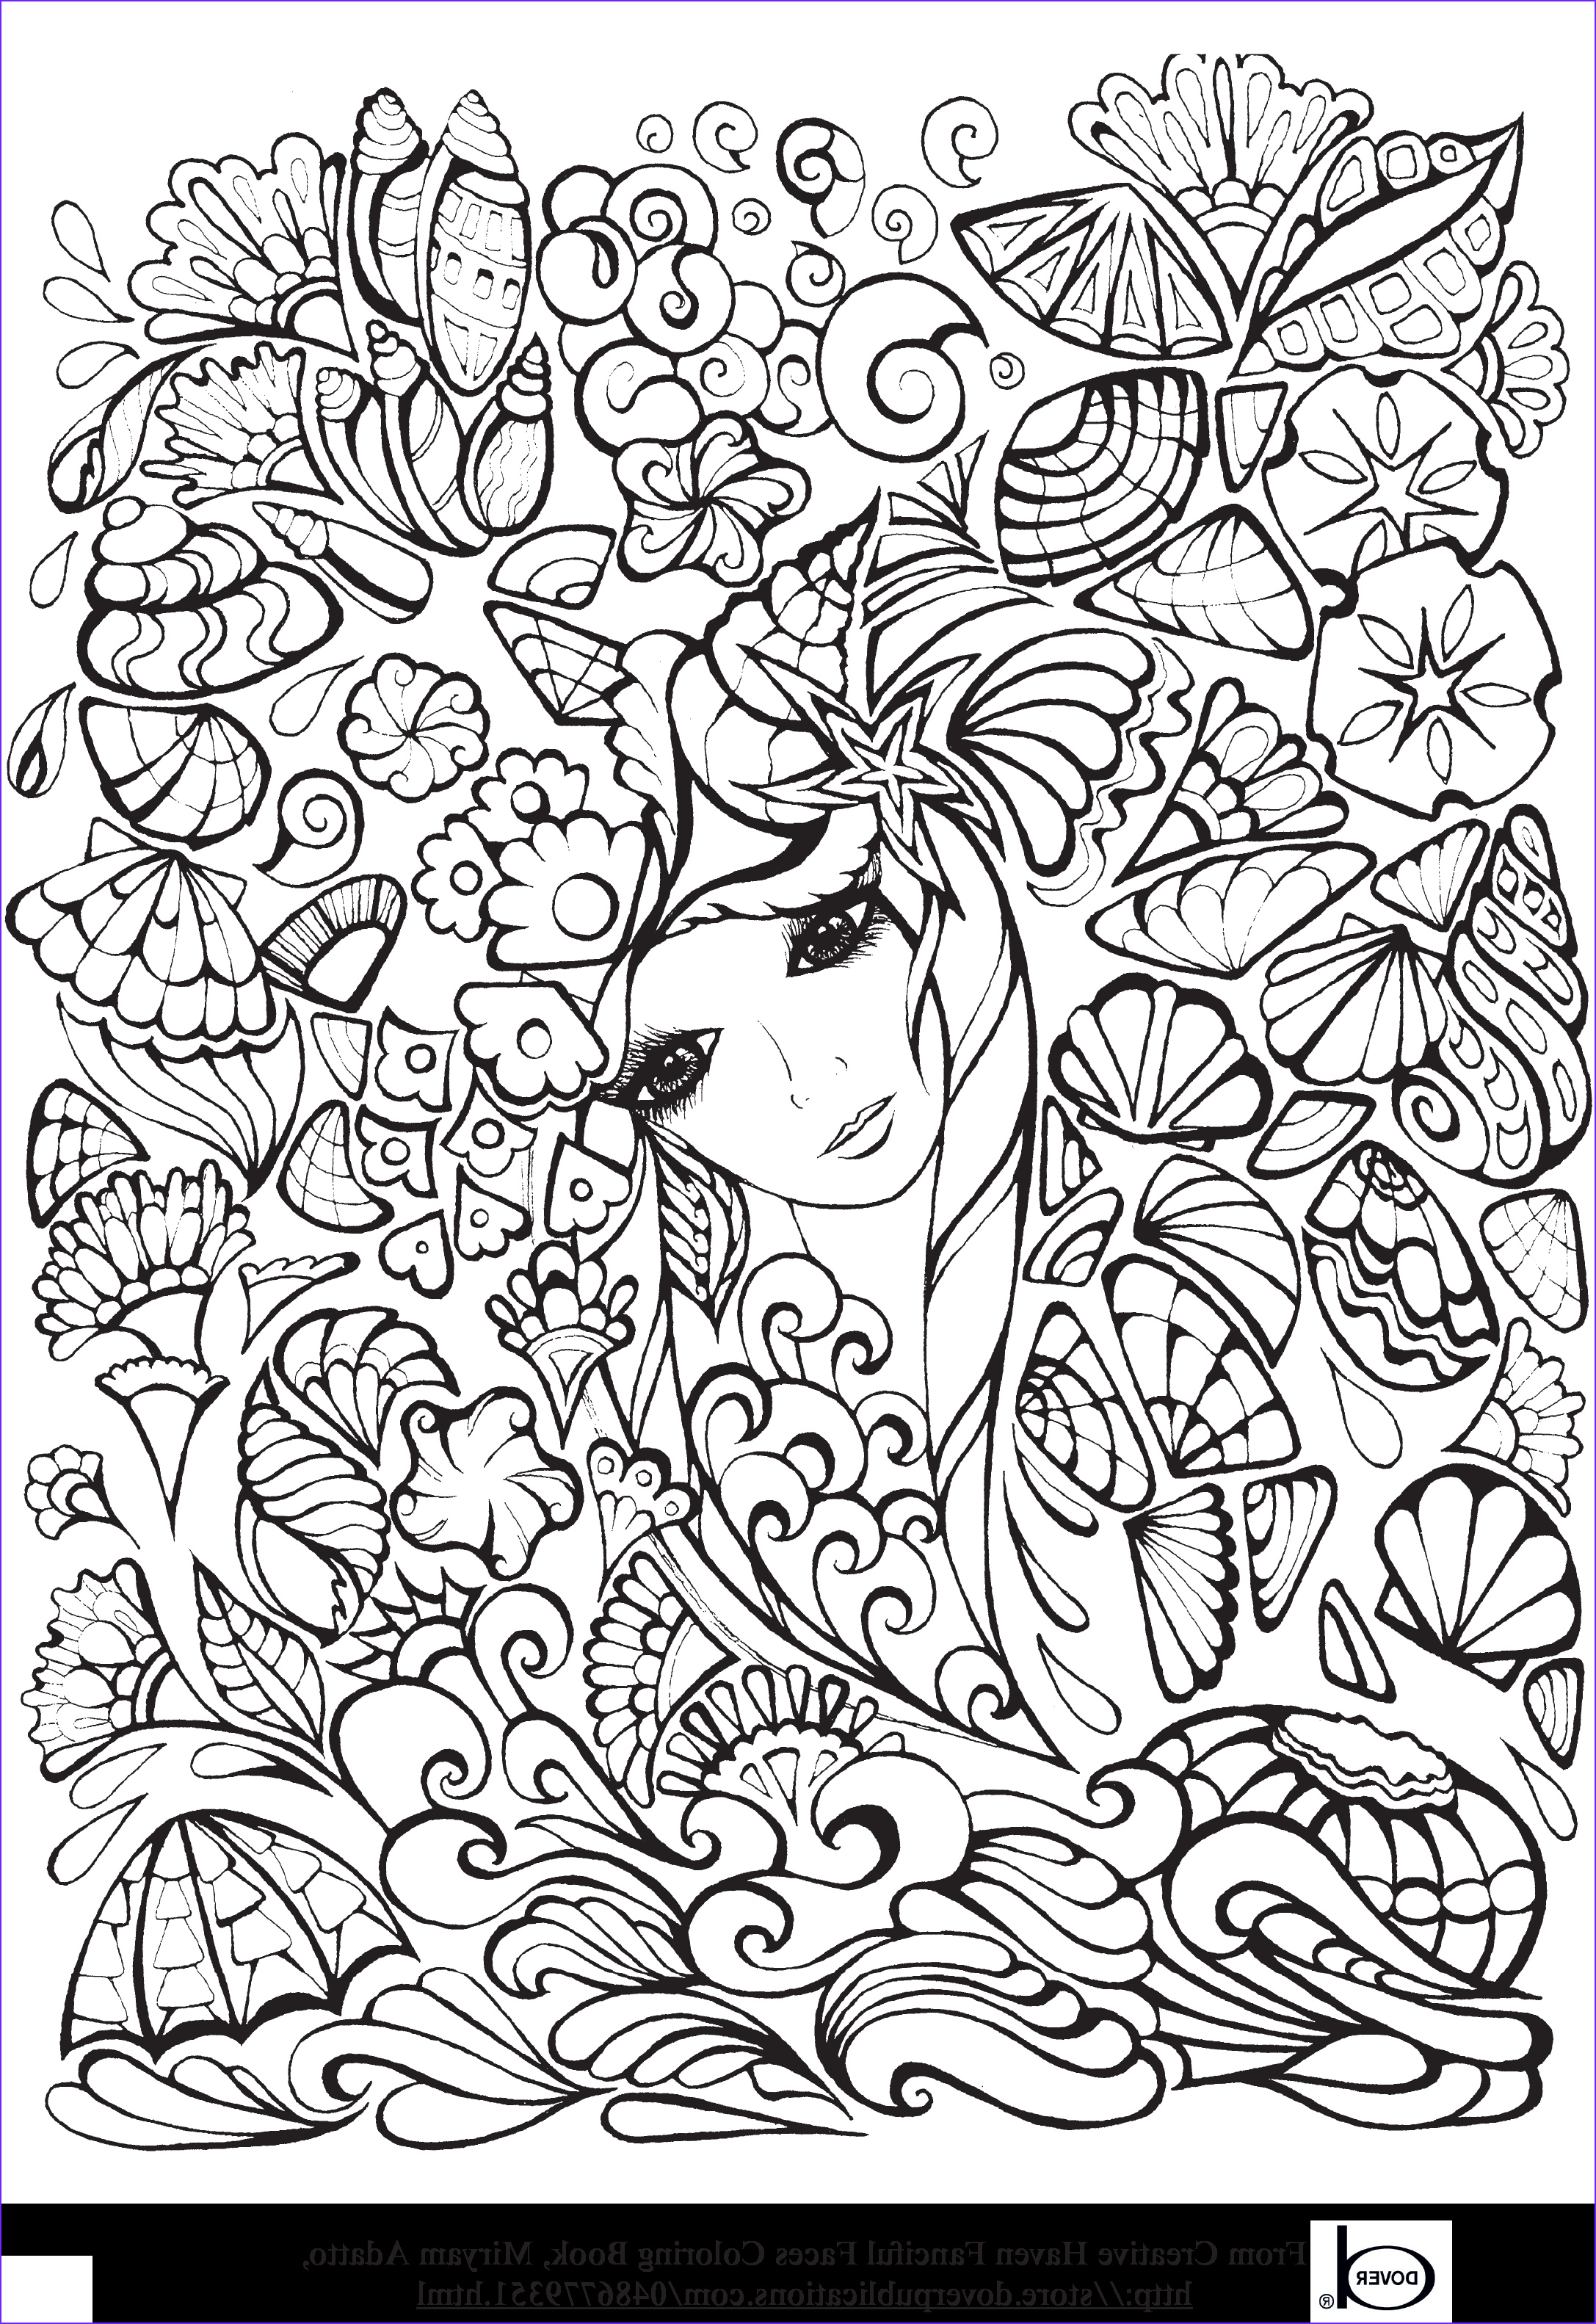 Coloring Book Pages for Adults Beautiful Gallery Free Printable Adult Coloring Pages Anime Girl with